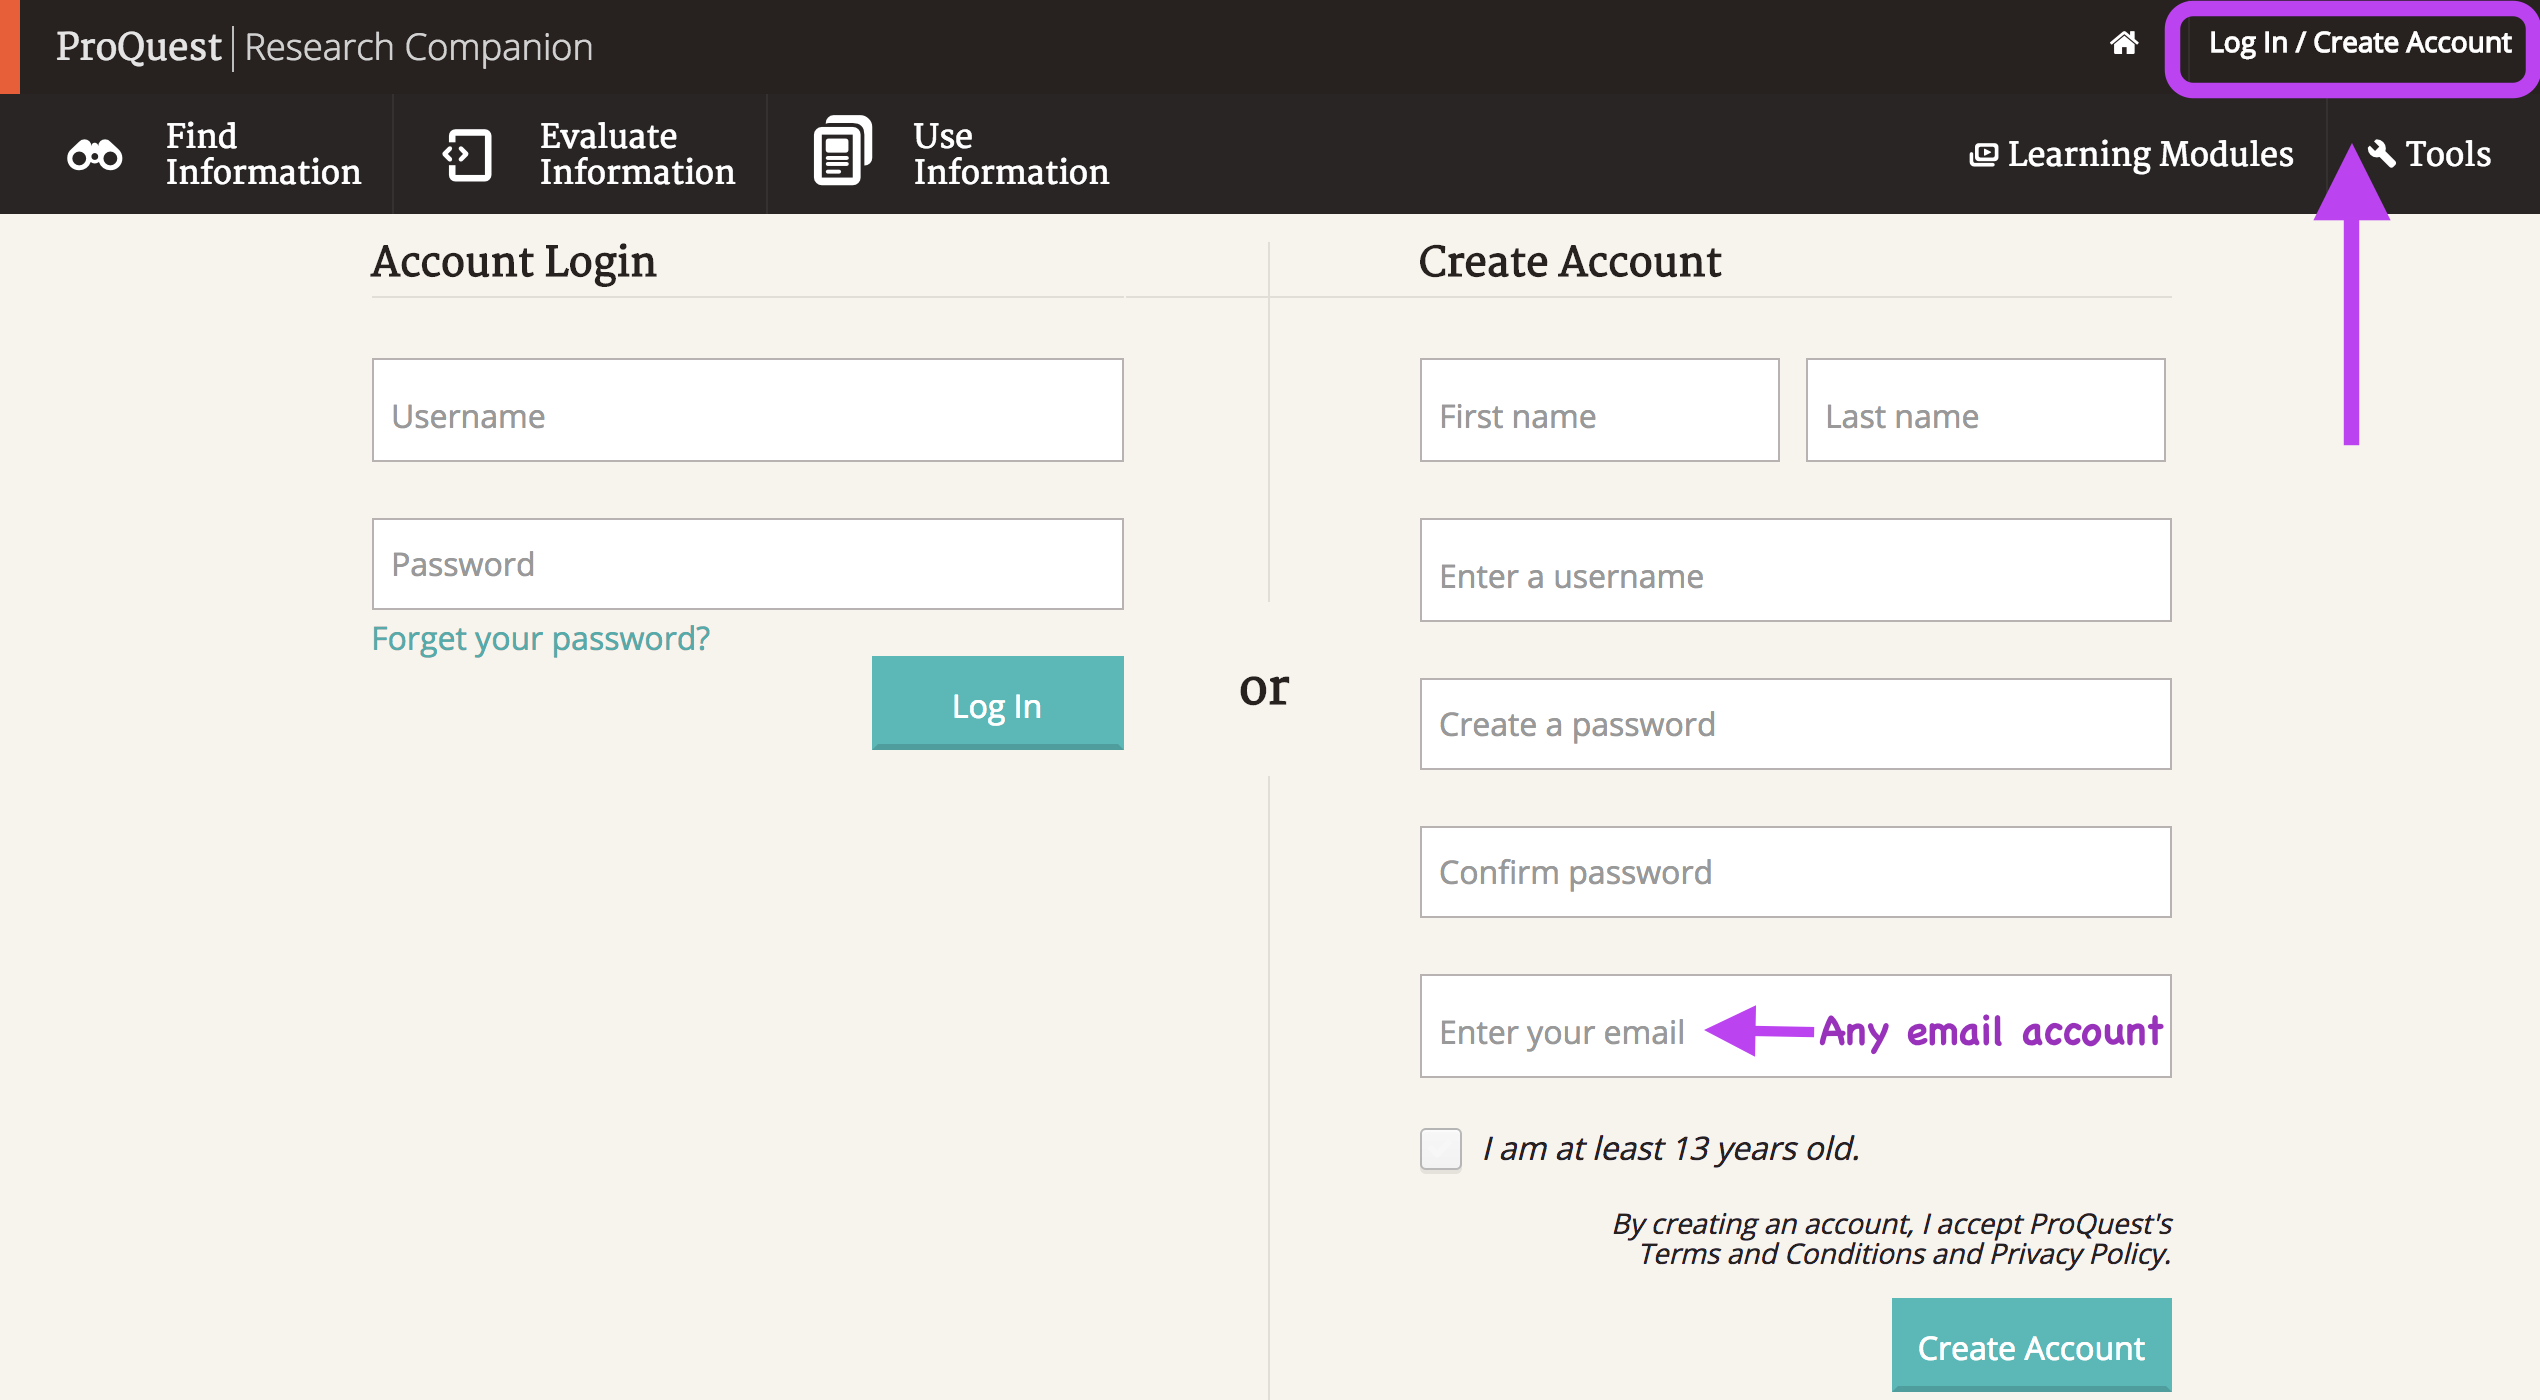 PQRC log in / create account page